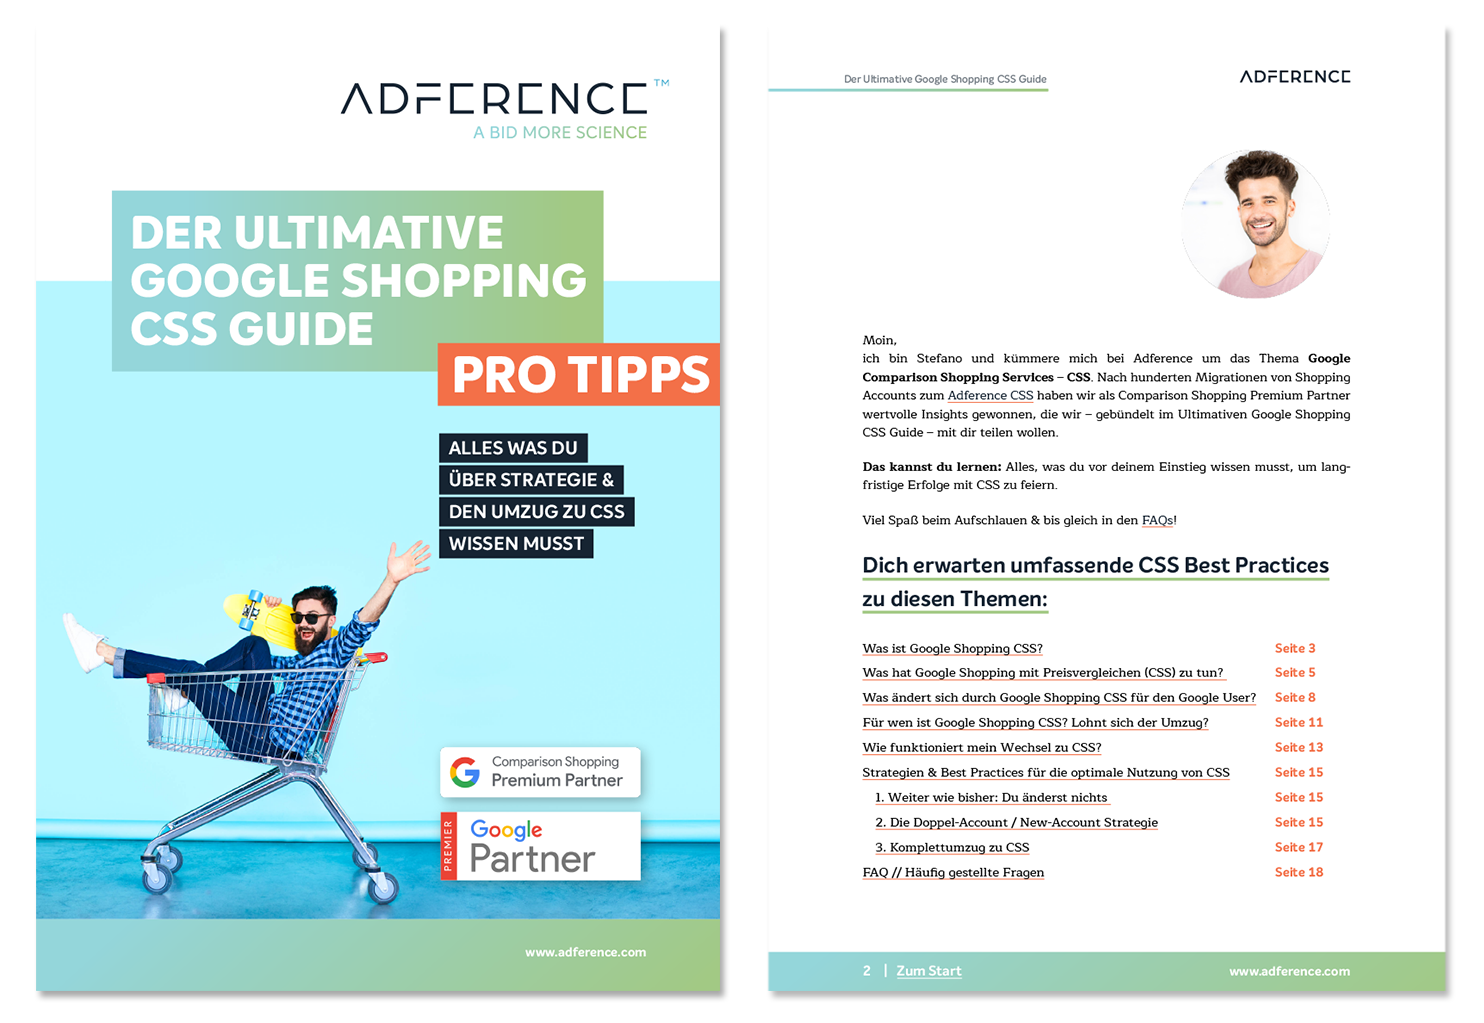 adf-LP-css guide-1484x1023